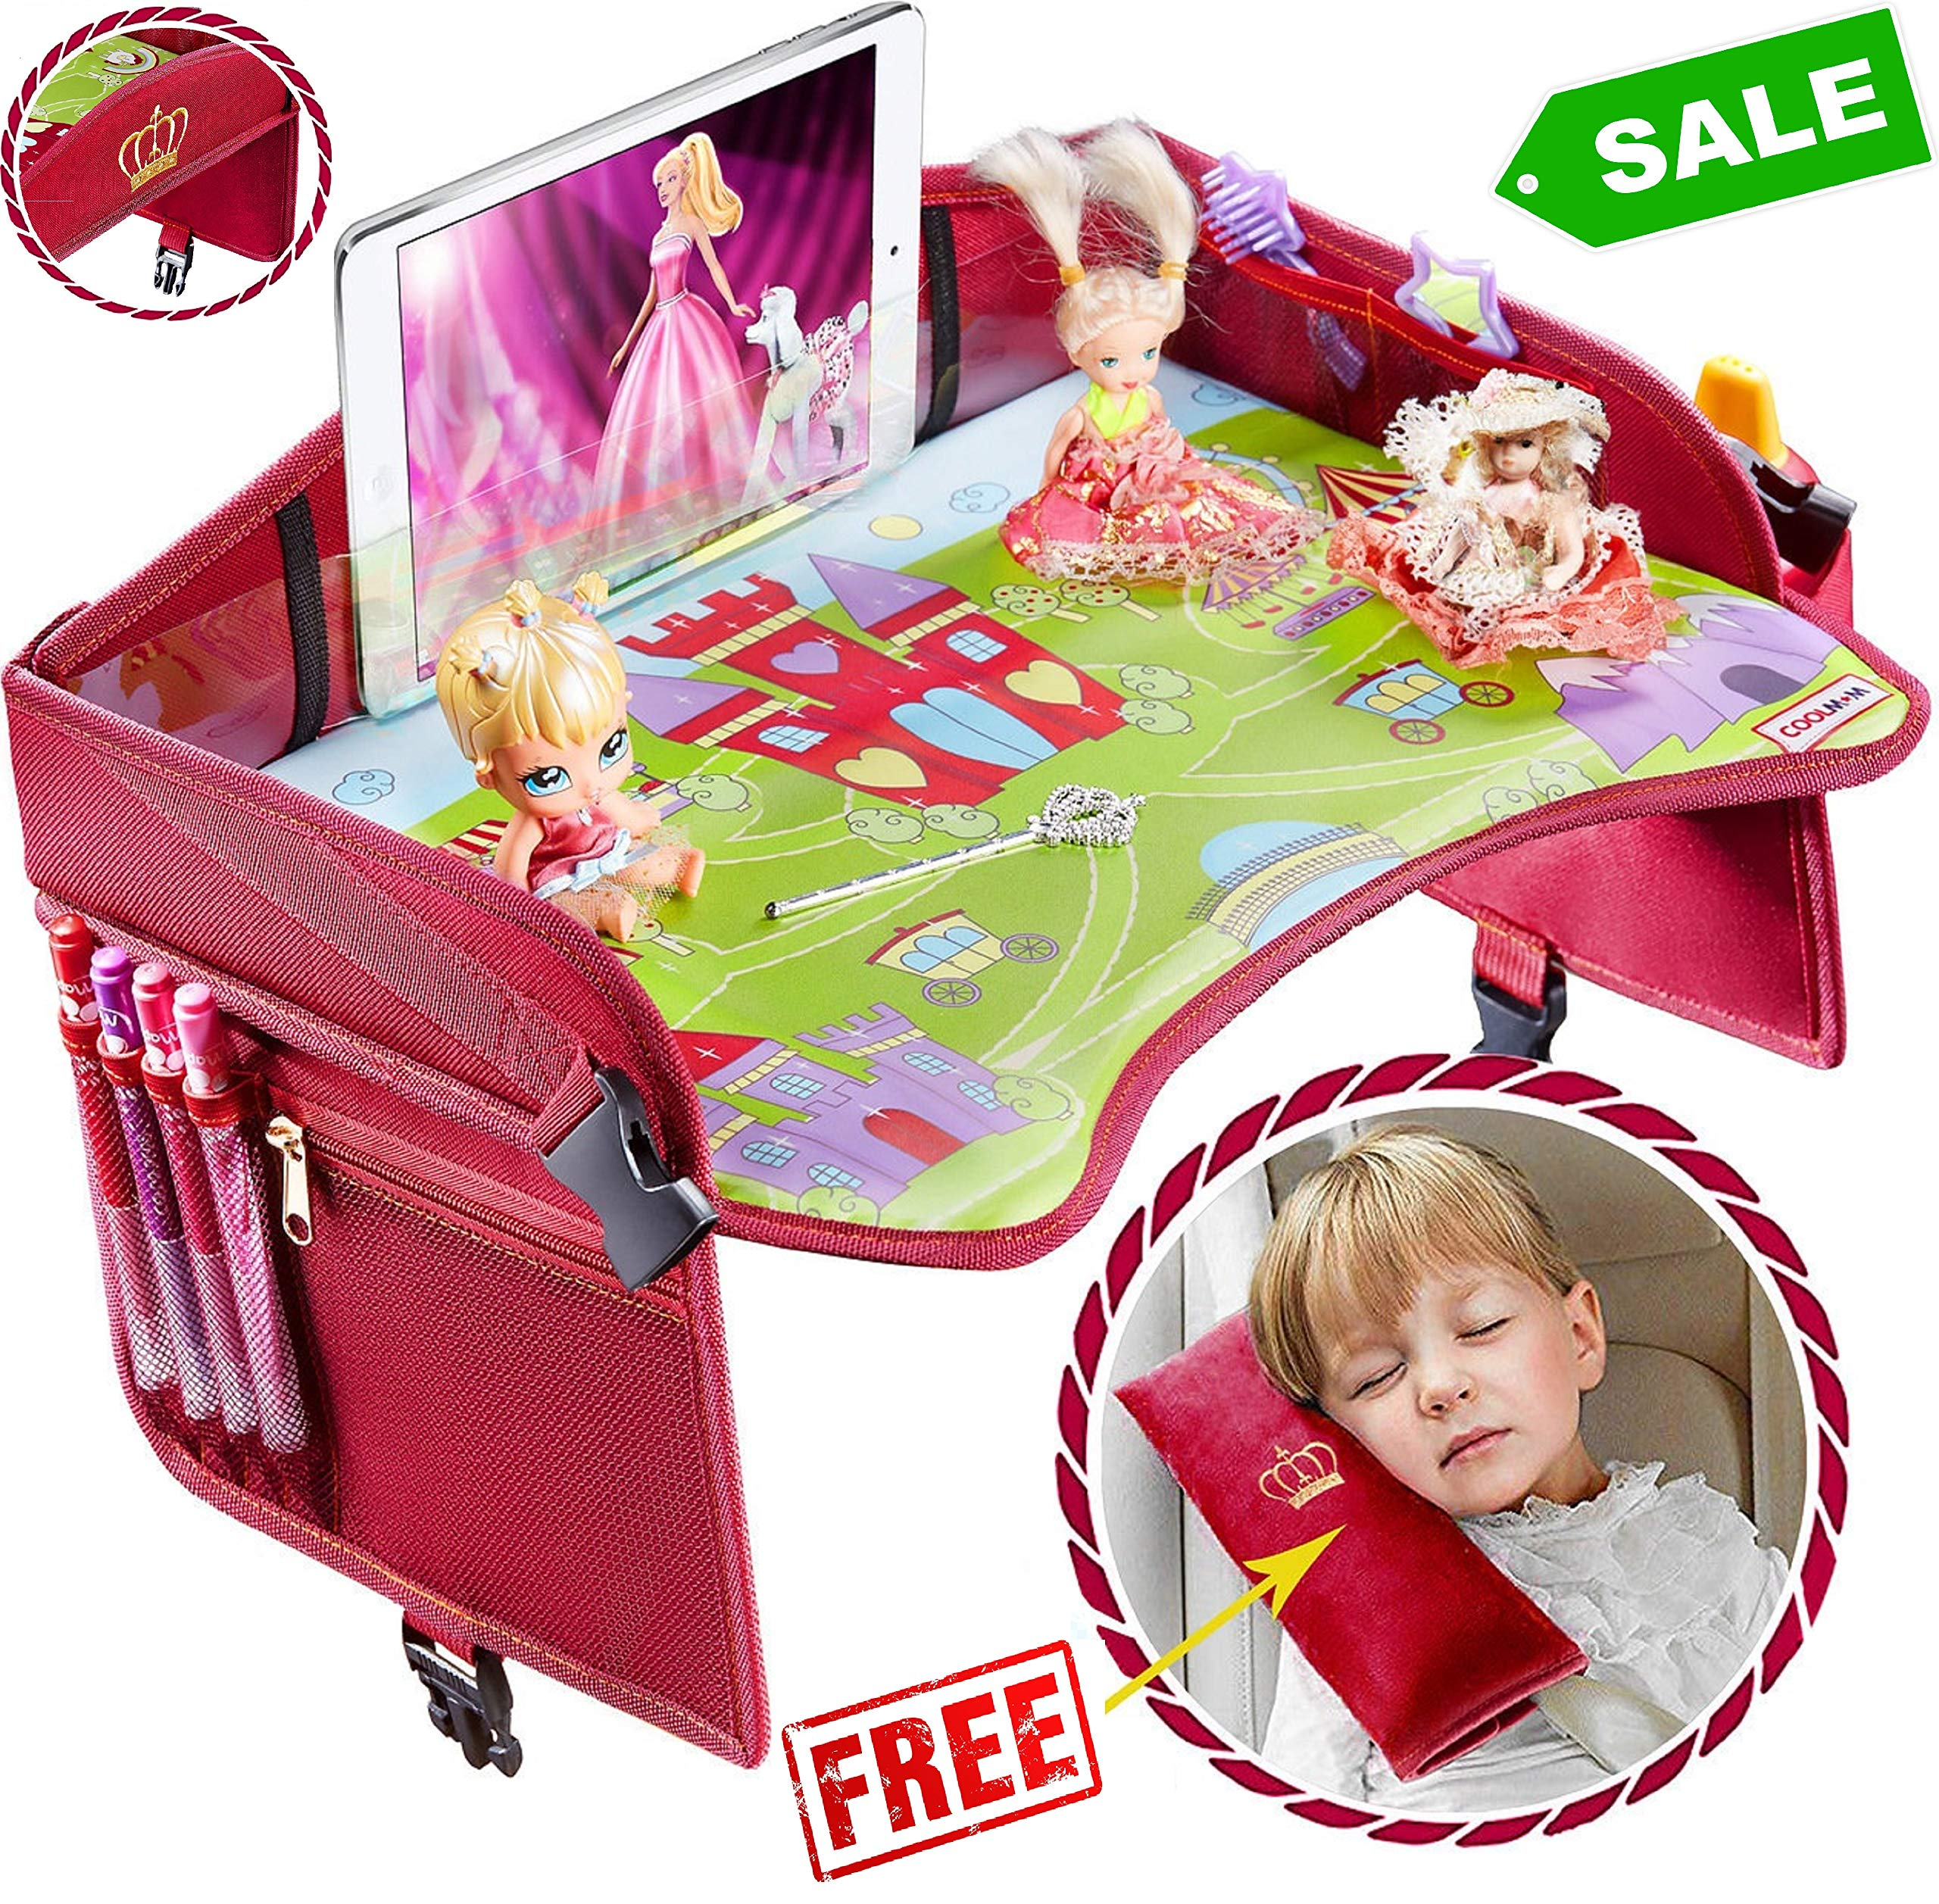 Travel Tray - Ideal as Kids Travel Tray - Toddler Travel Tray & Baby Stroller Tray - Travel Activity Tray & Play Tray - Baby Snack Tray & Kid's Car Seat Tray - Play Table (Premium Red/Pink) by Coolmum